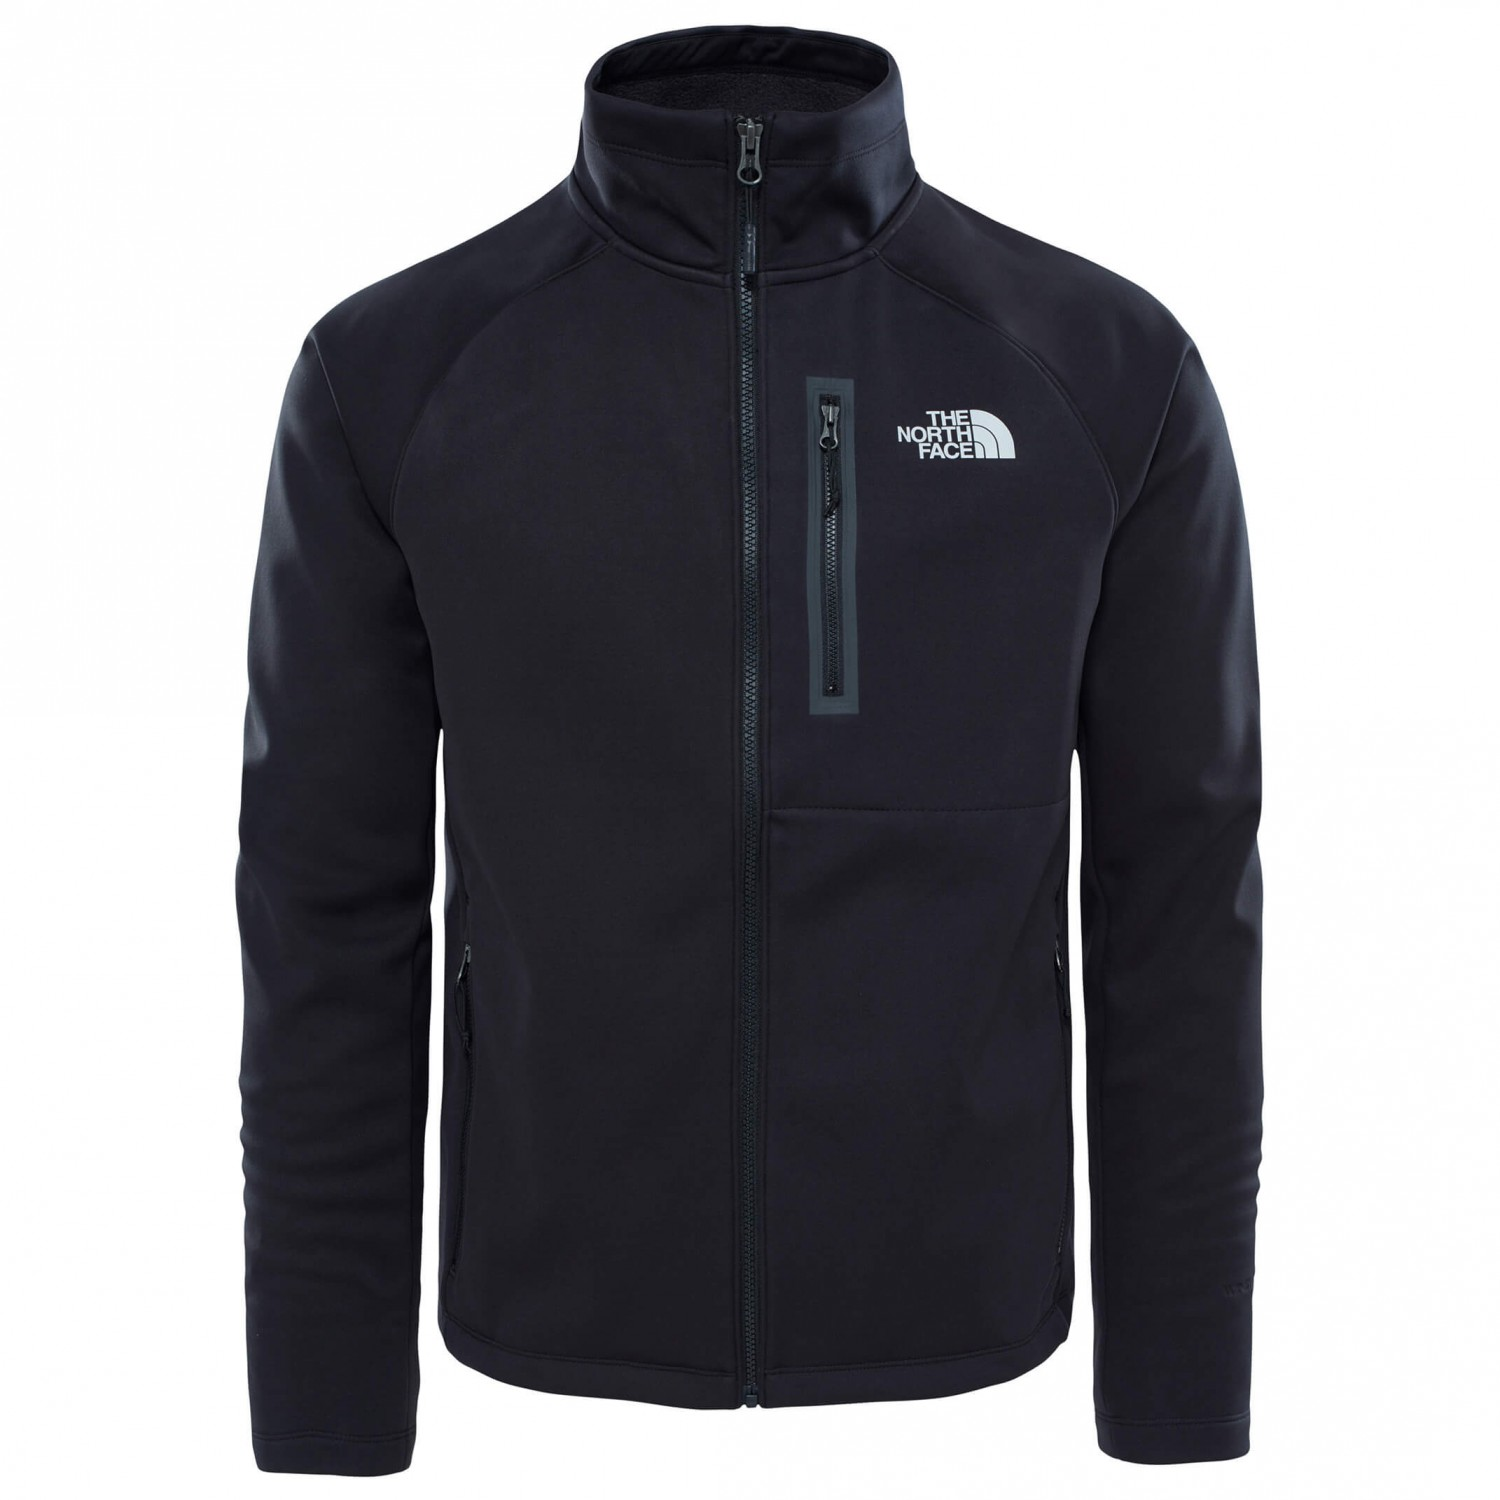 the north face can soft shell jacket softshell jacket. Black Bedroom Furniture Sets. Home Design Ideas